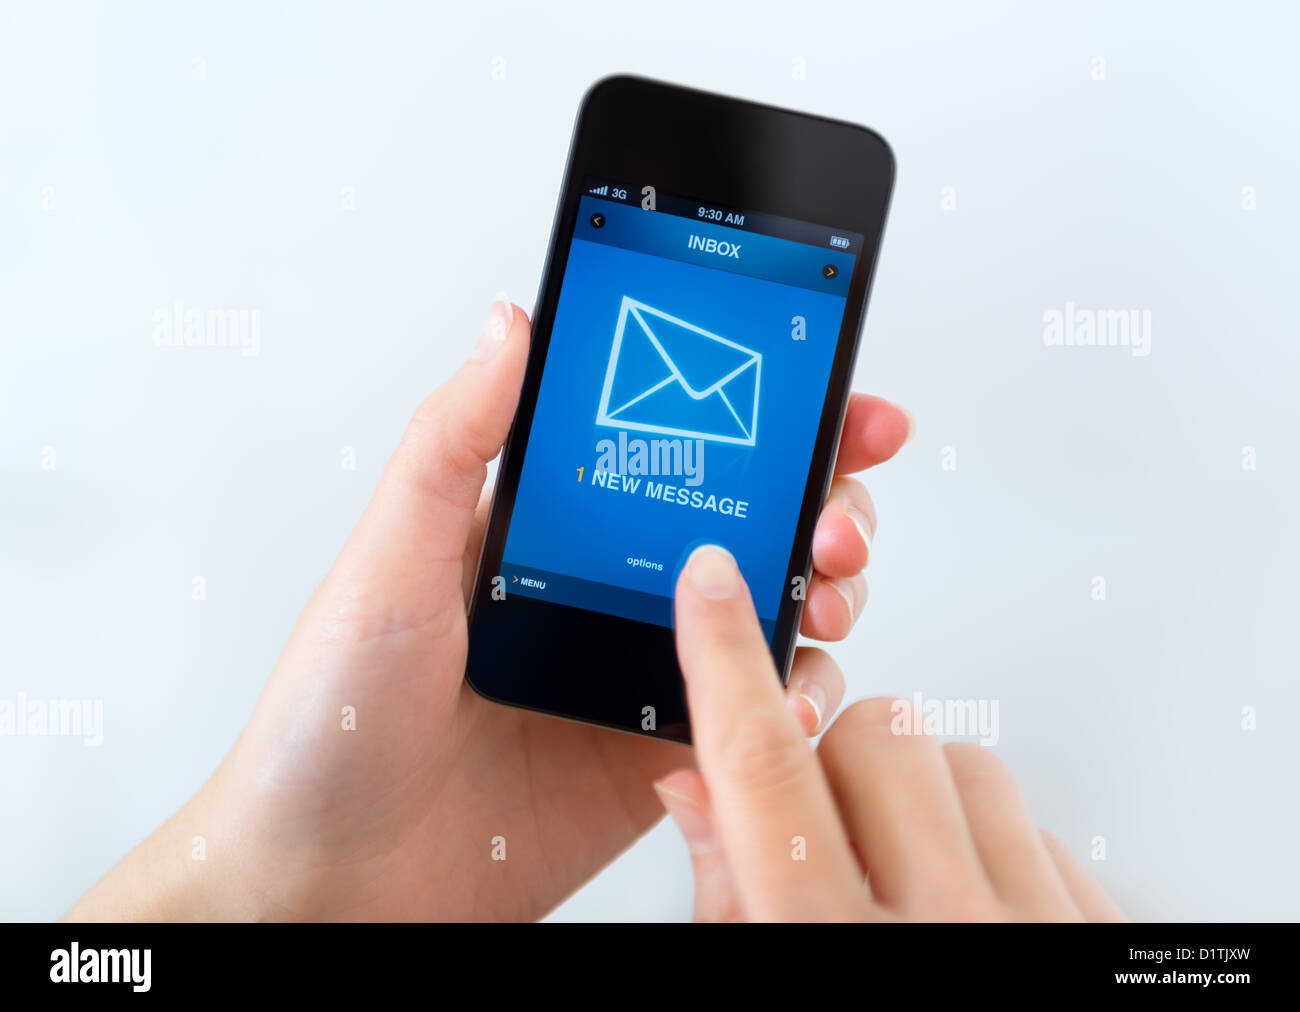 A new message received on mobile phone. - Stock Image